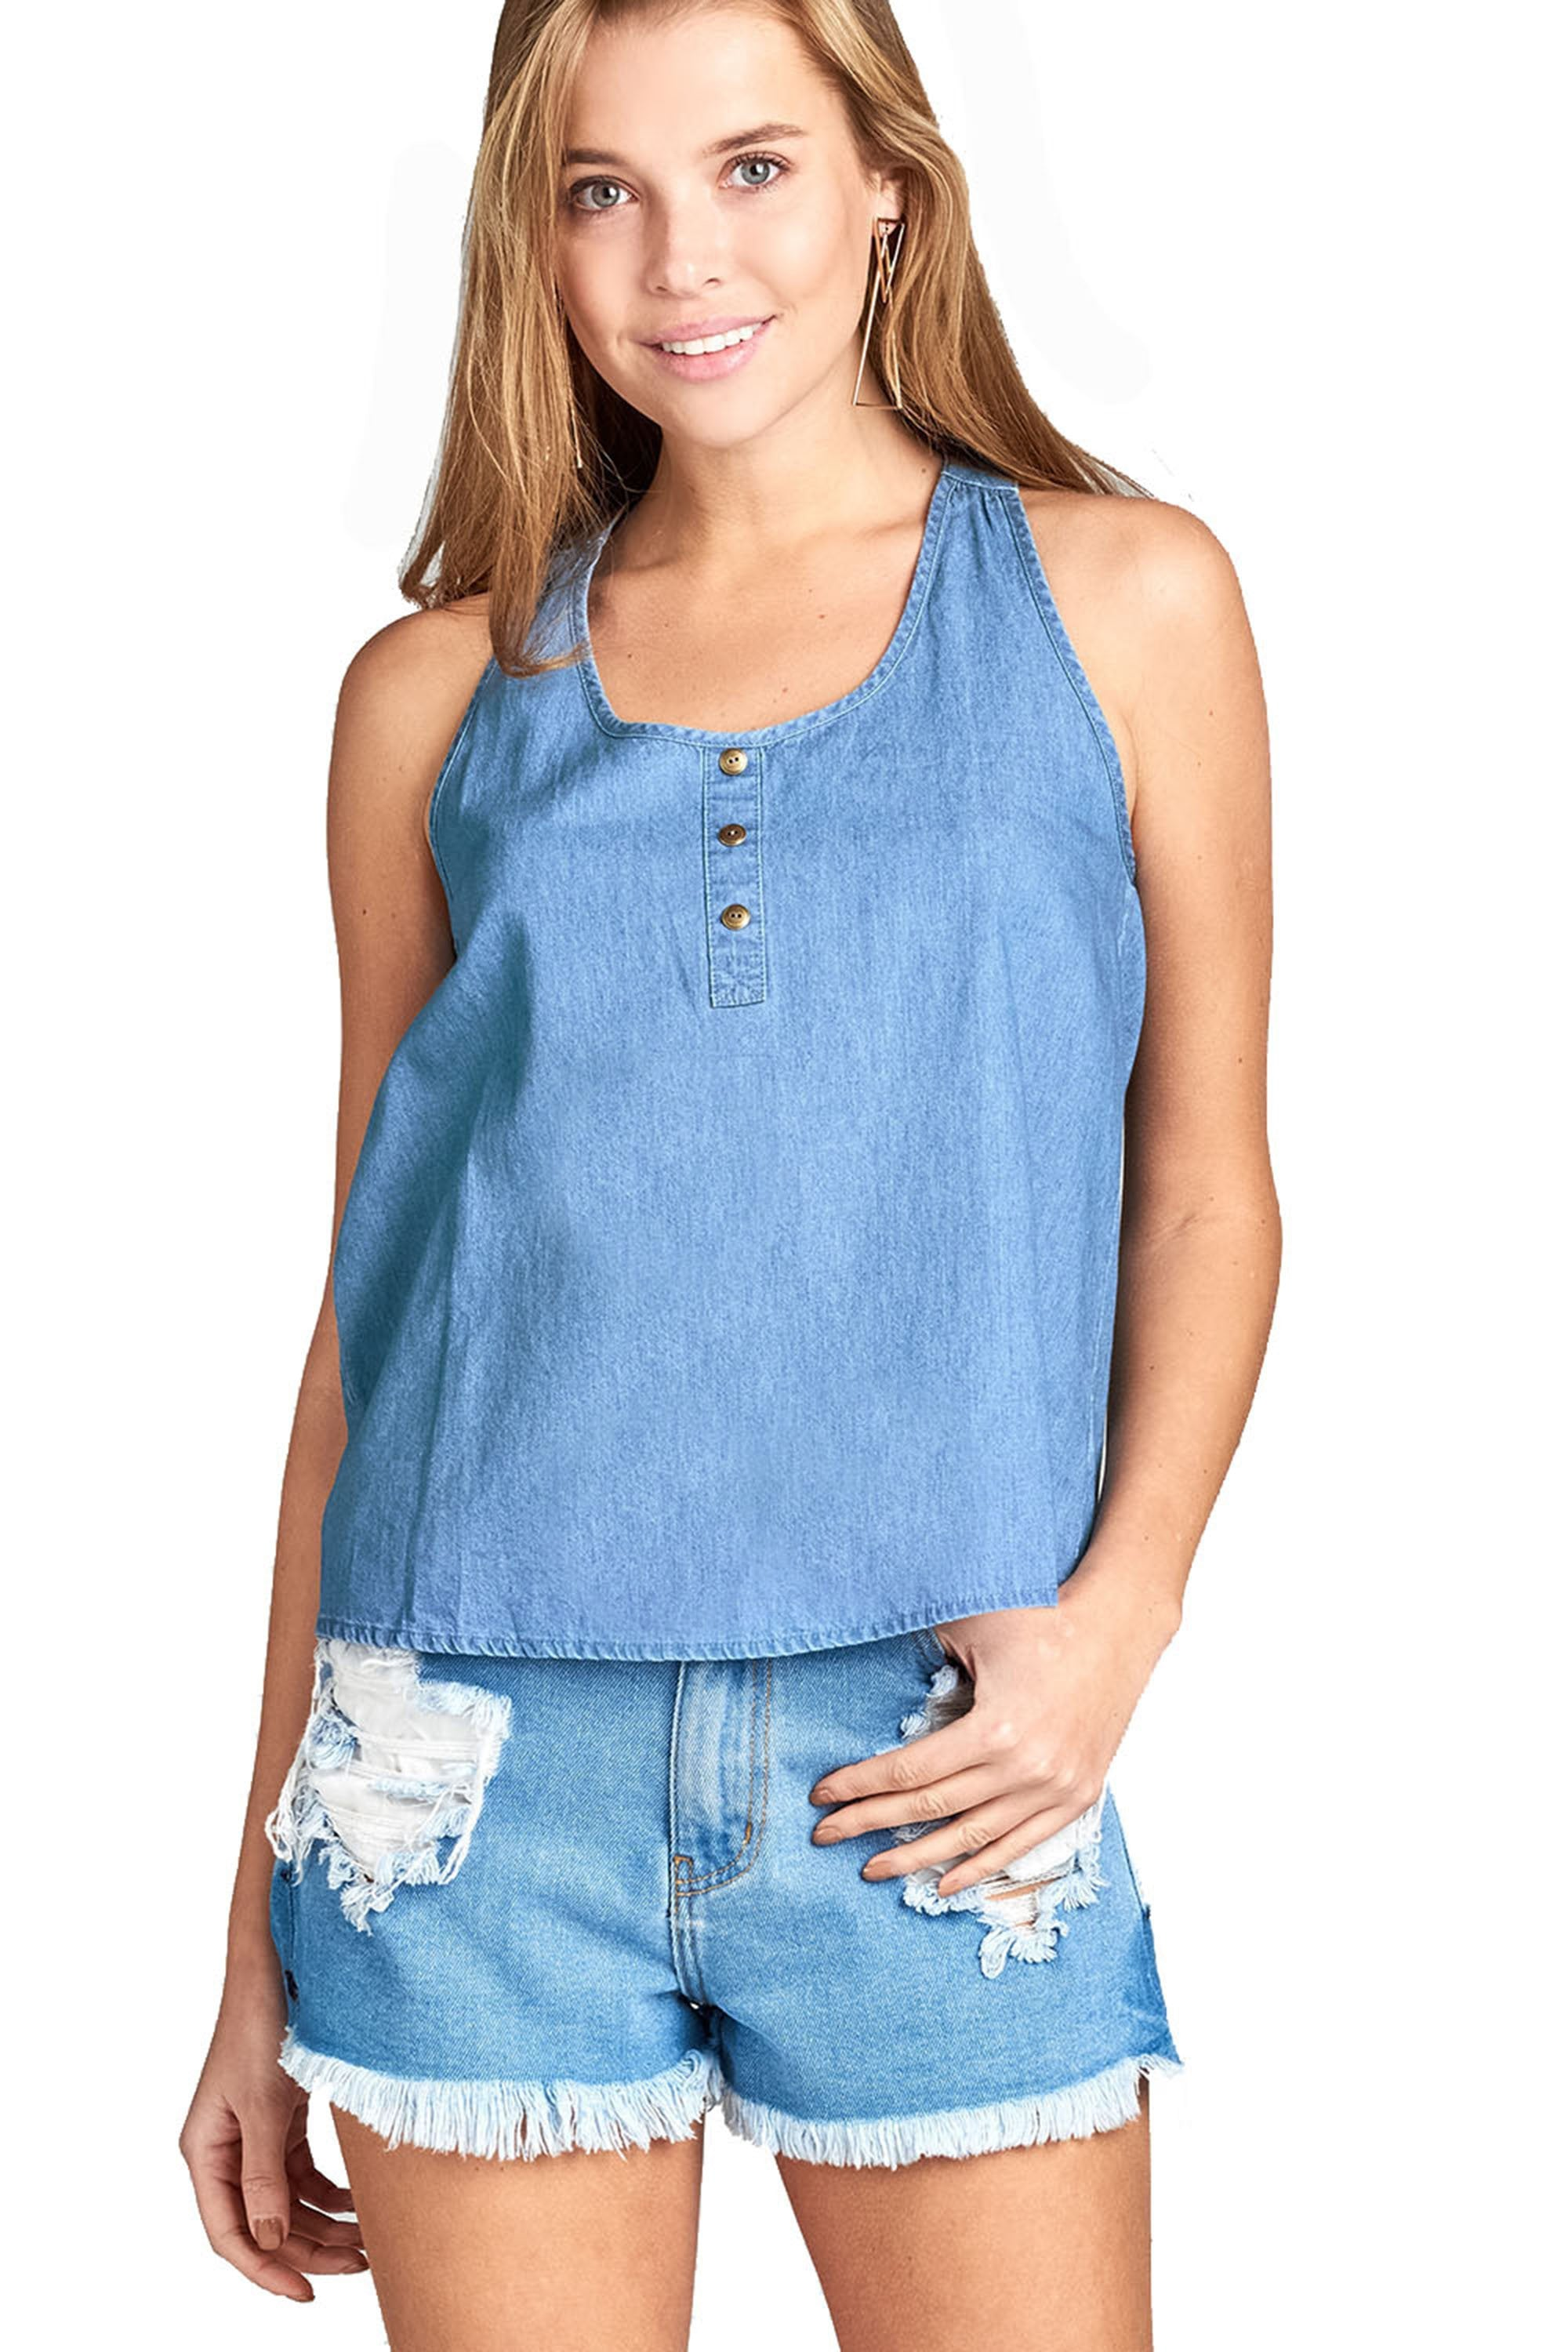 Women's Sleeveless Scoop Neck Front Button Detail Chambray Top